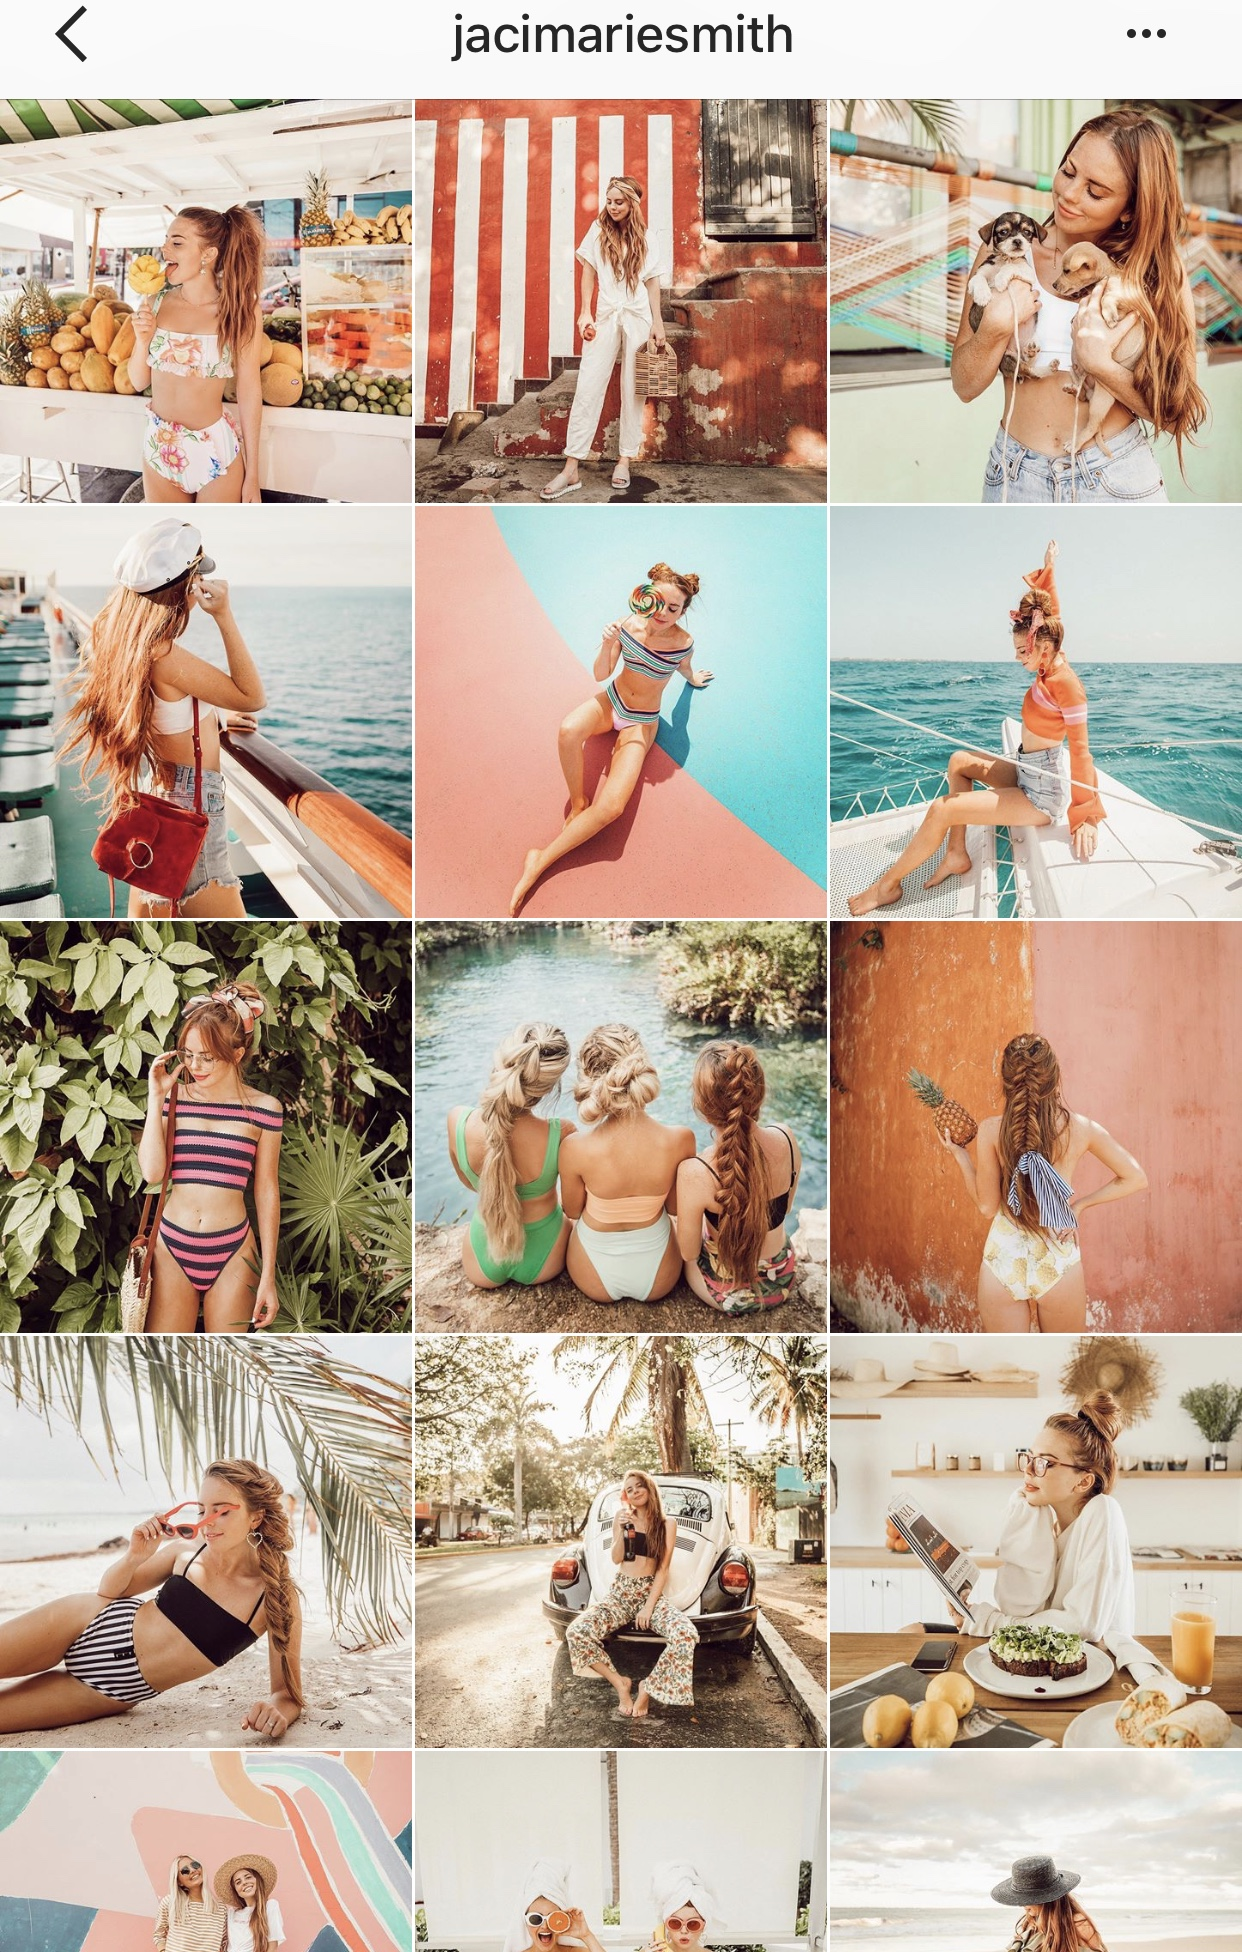 Create eye-catching Instagram aesthetics with presets! – The